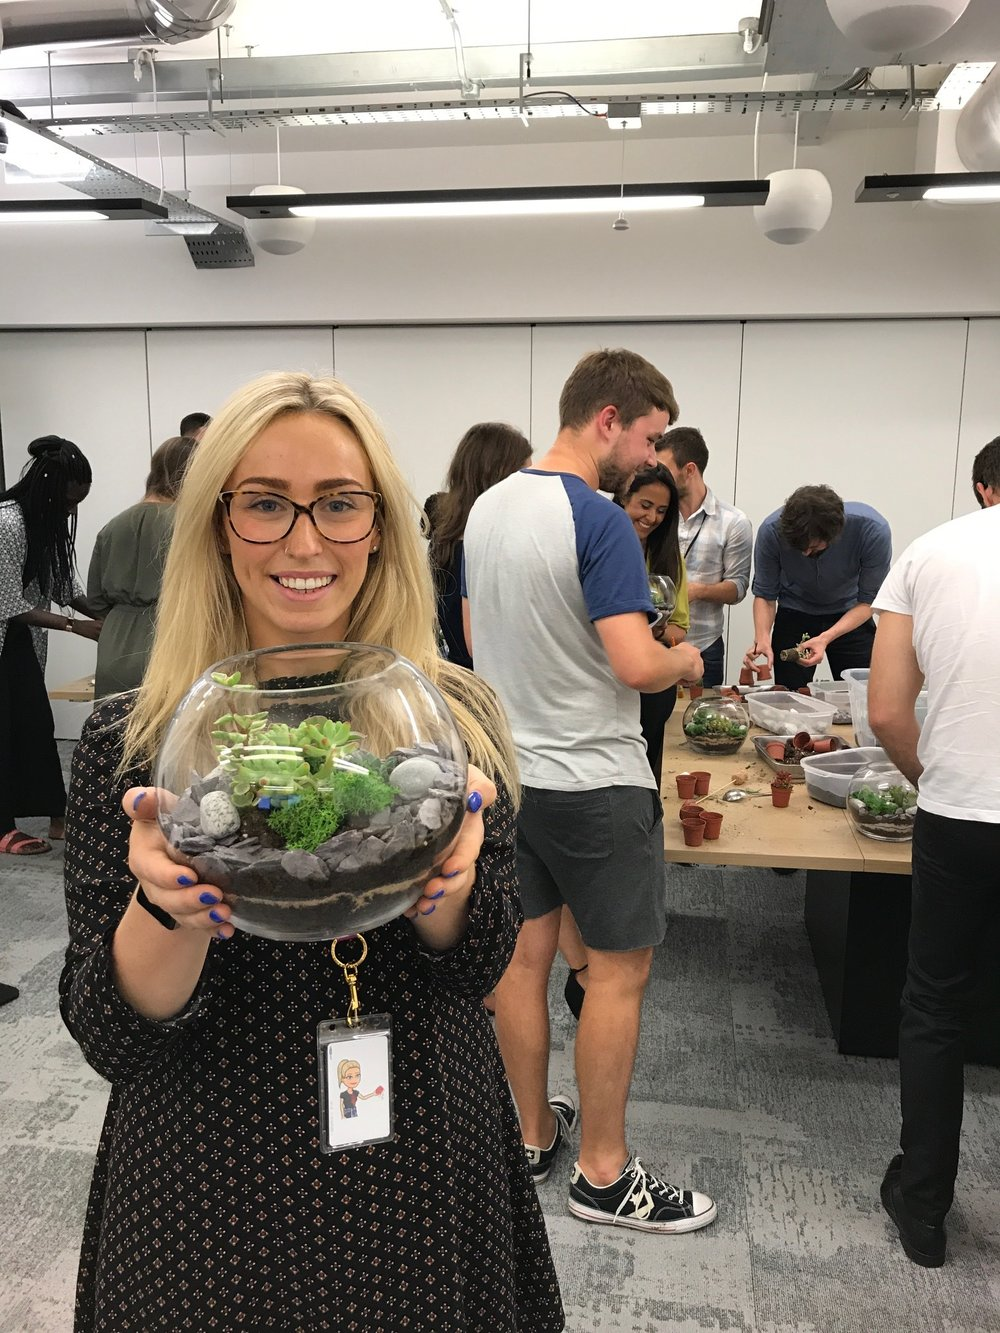 corporate terrarium workshop, terrarium workshop london, terarrium workshop london 2019